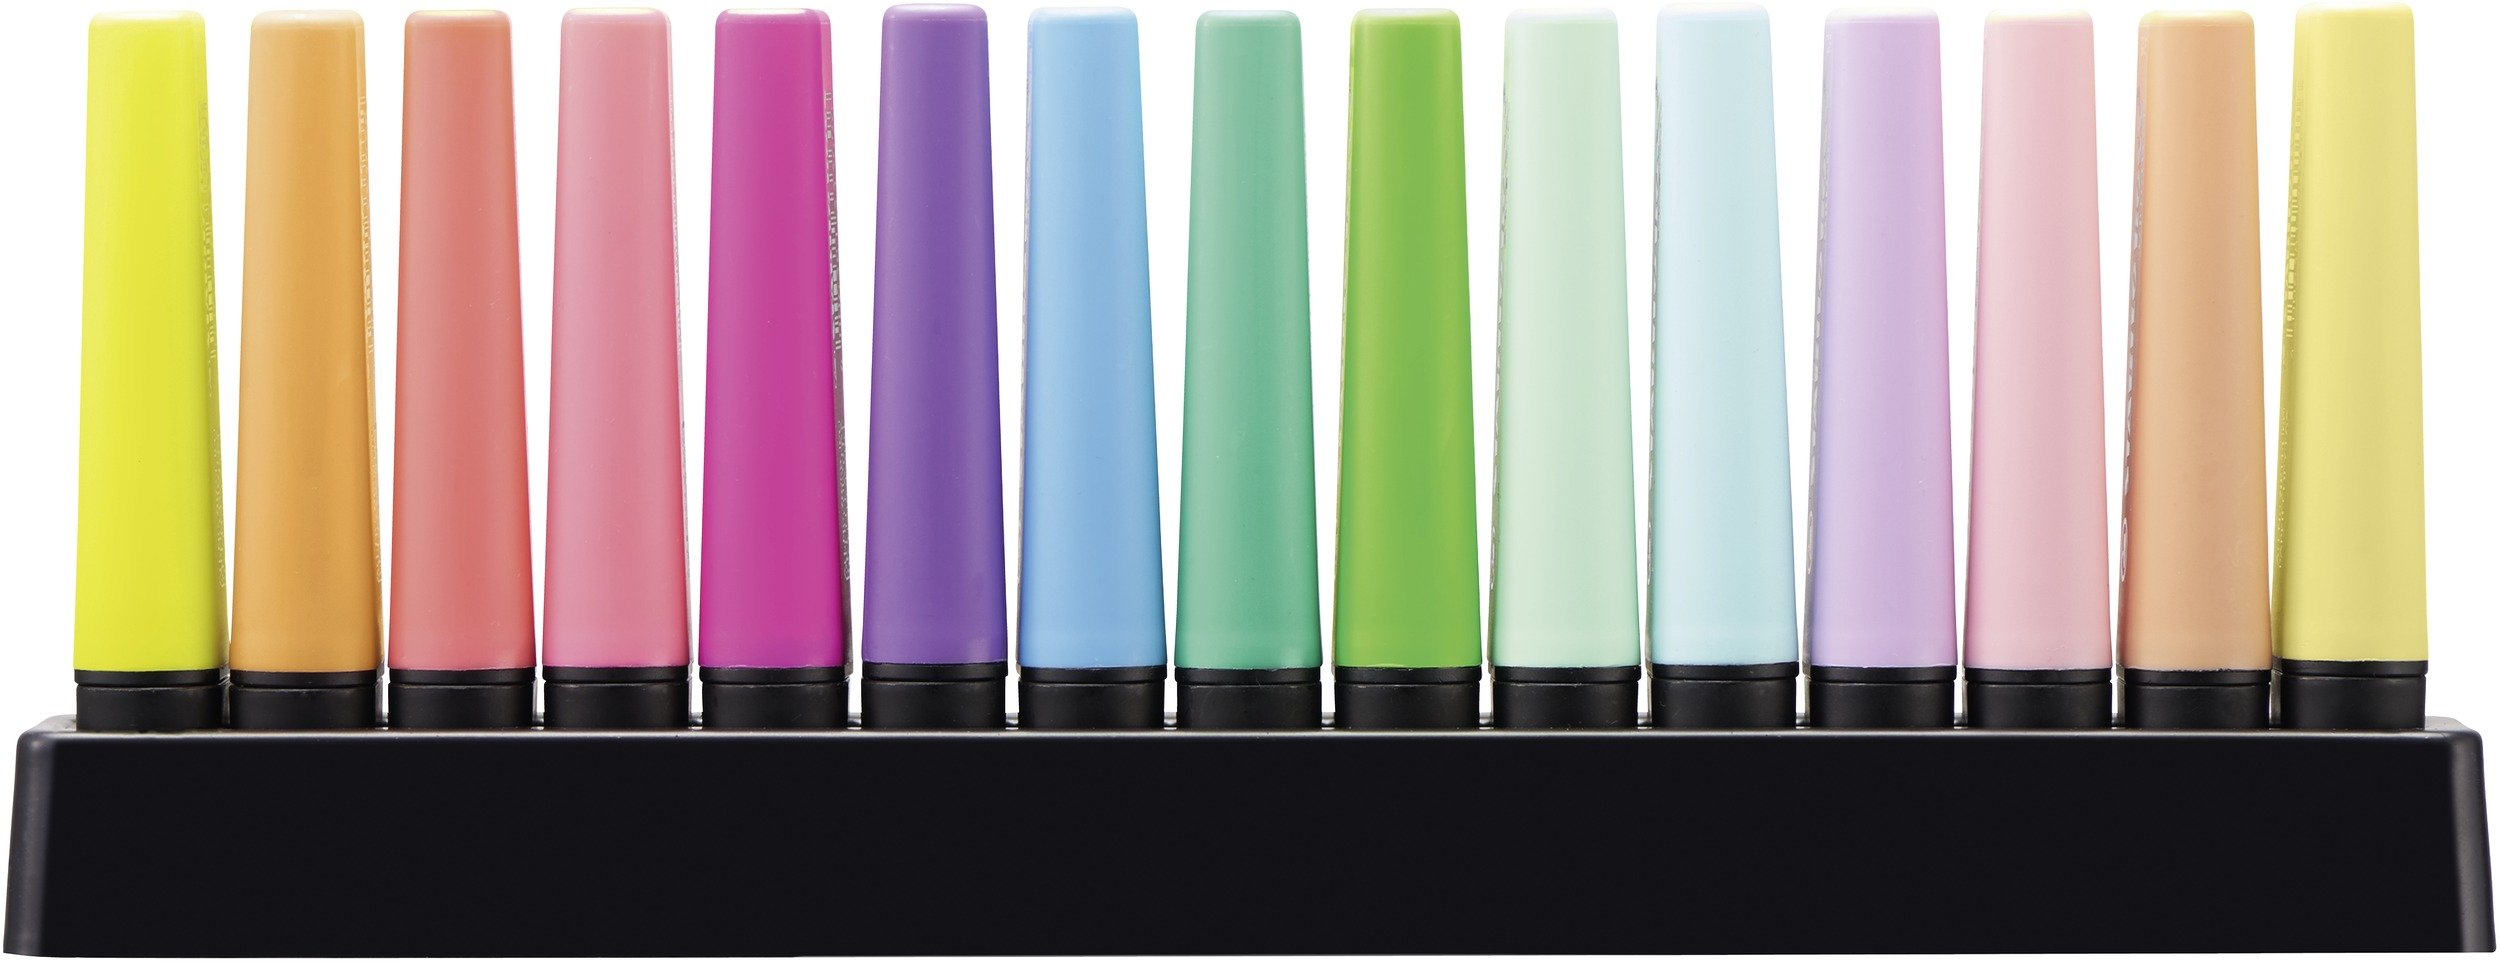 Stabilo Boss Original Highlighter Deskset of 15 Assorted Colours - Limited Edition by Stablio (Image #2)